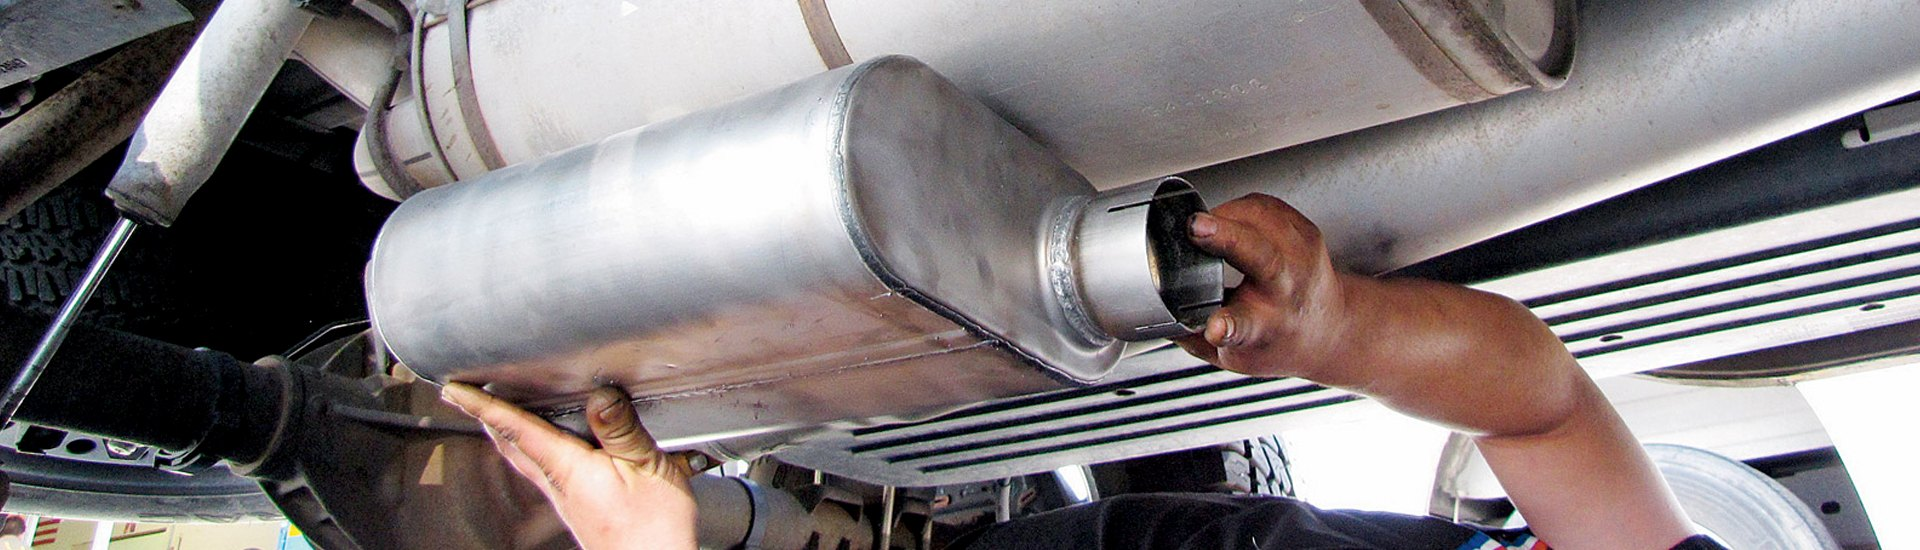 hight resolution of replacement exhaust parts